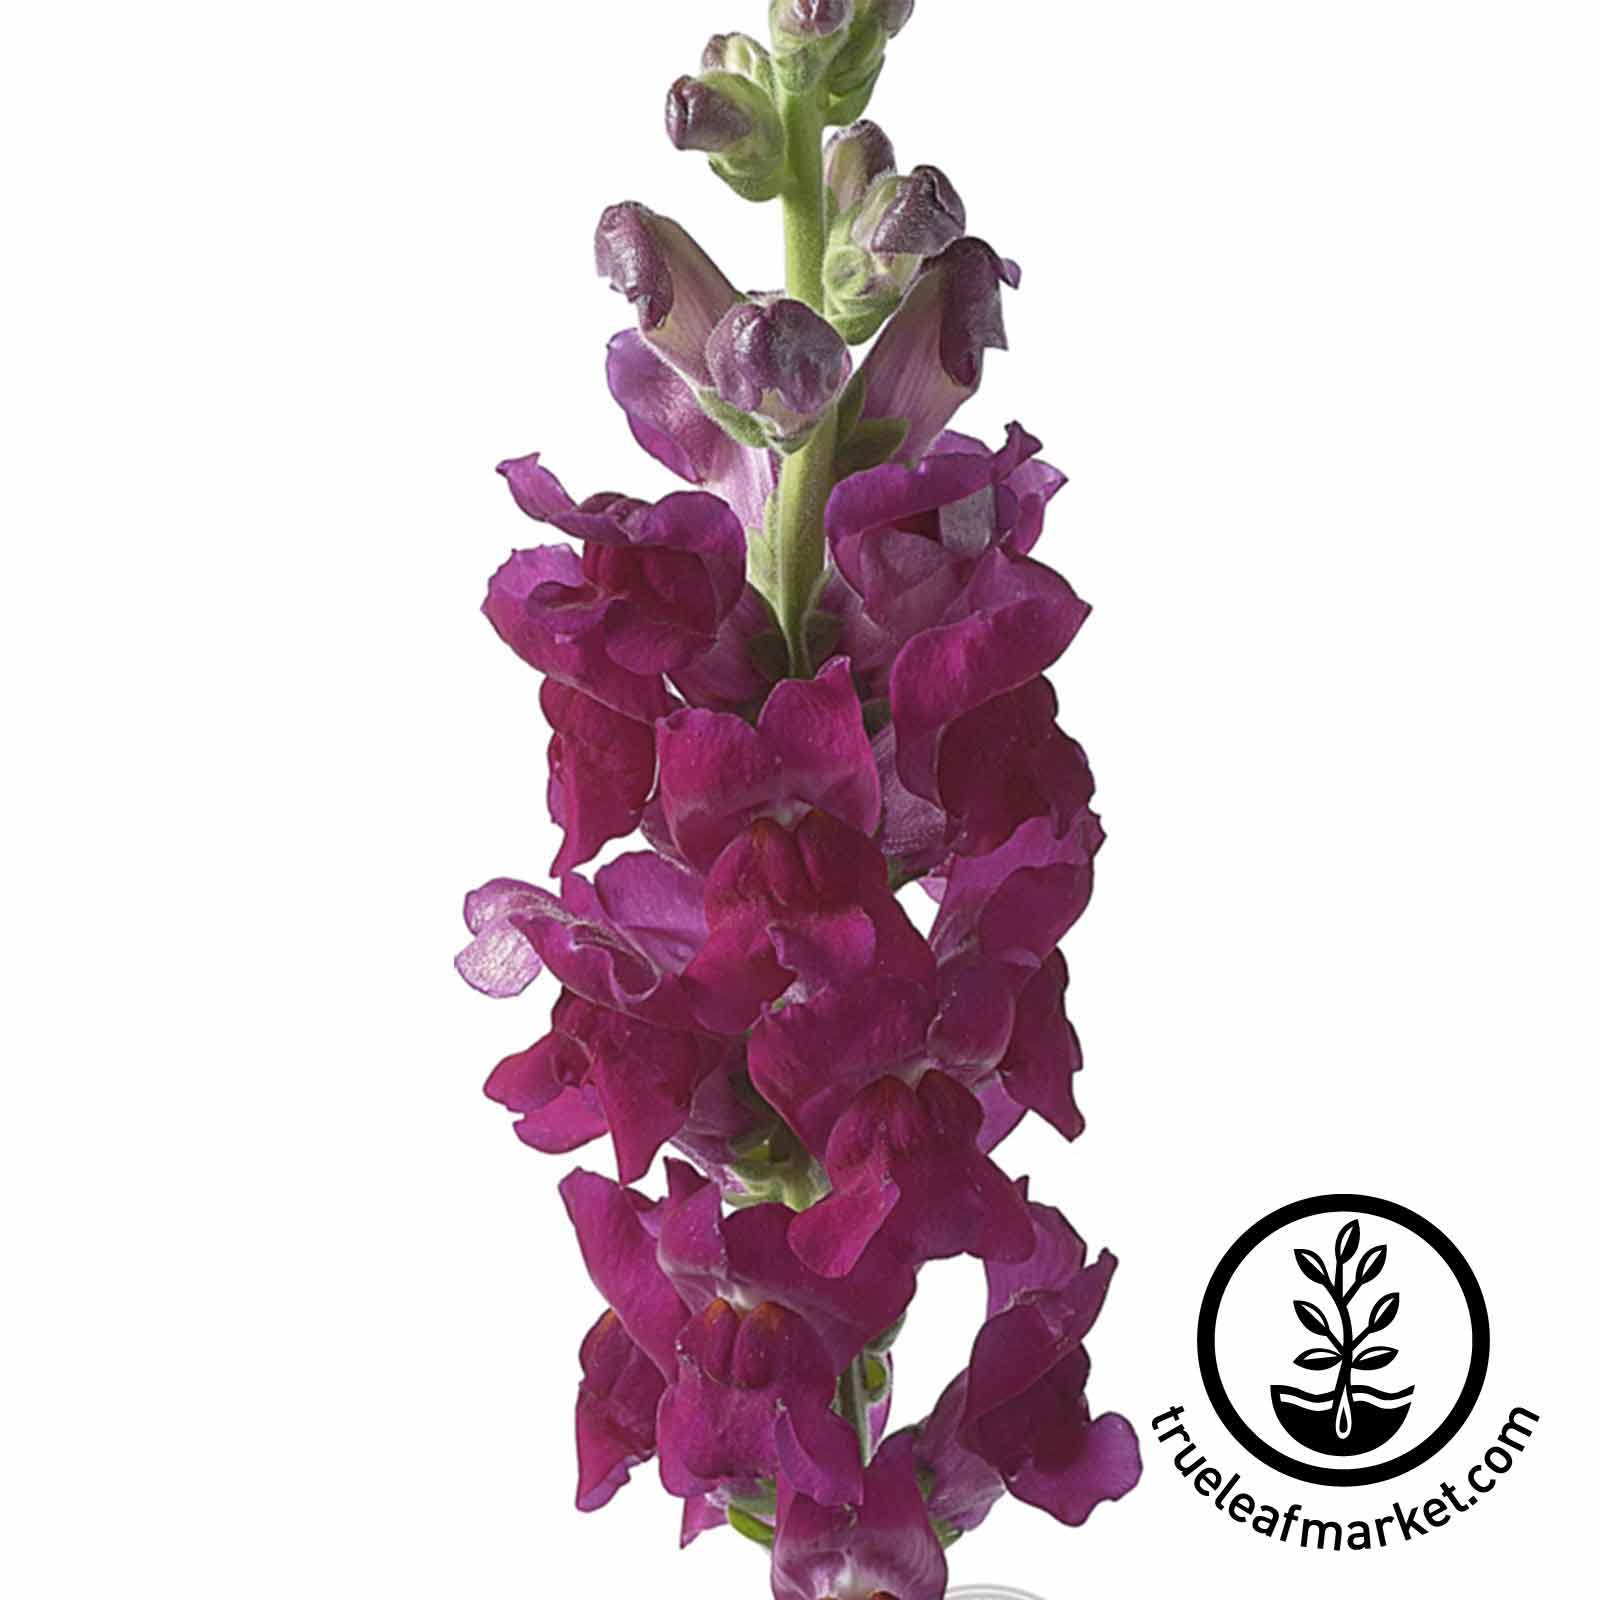 Snapdragon Liberty Classic Series Scarlet Seed